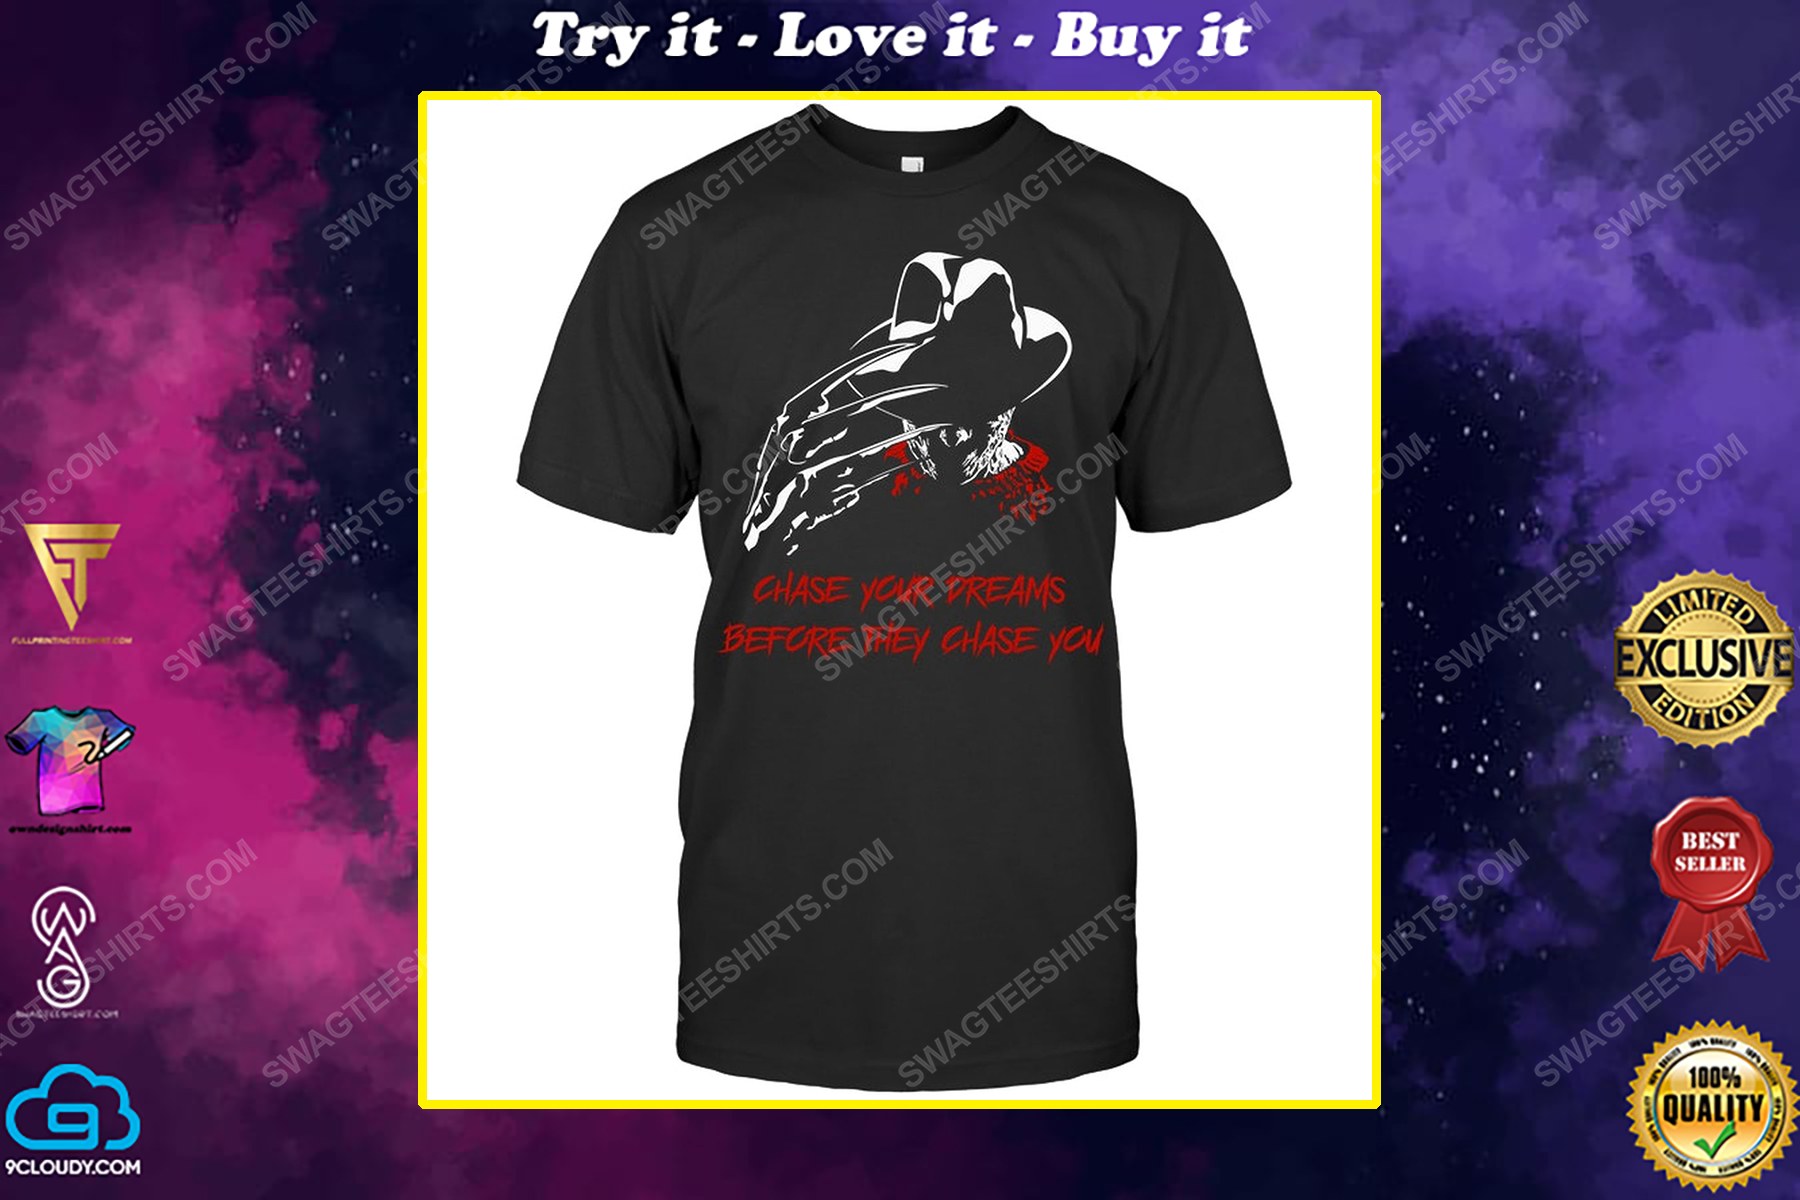 Chase your dreams before they chase you freddy krueger shirt